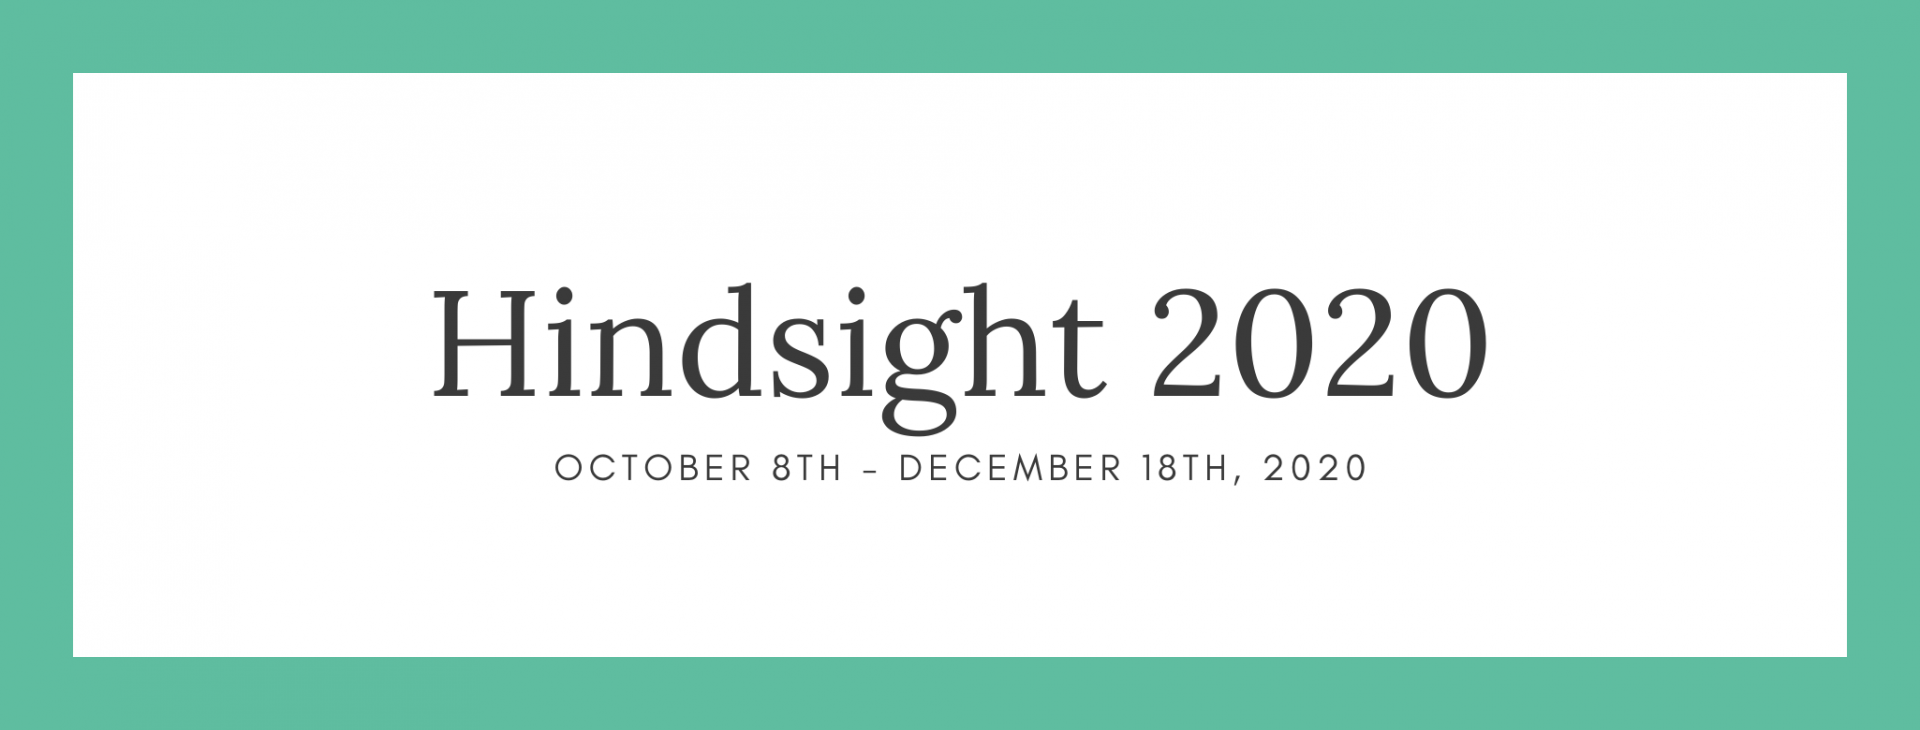 Call for submissions! Hindsight 2020